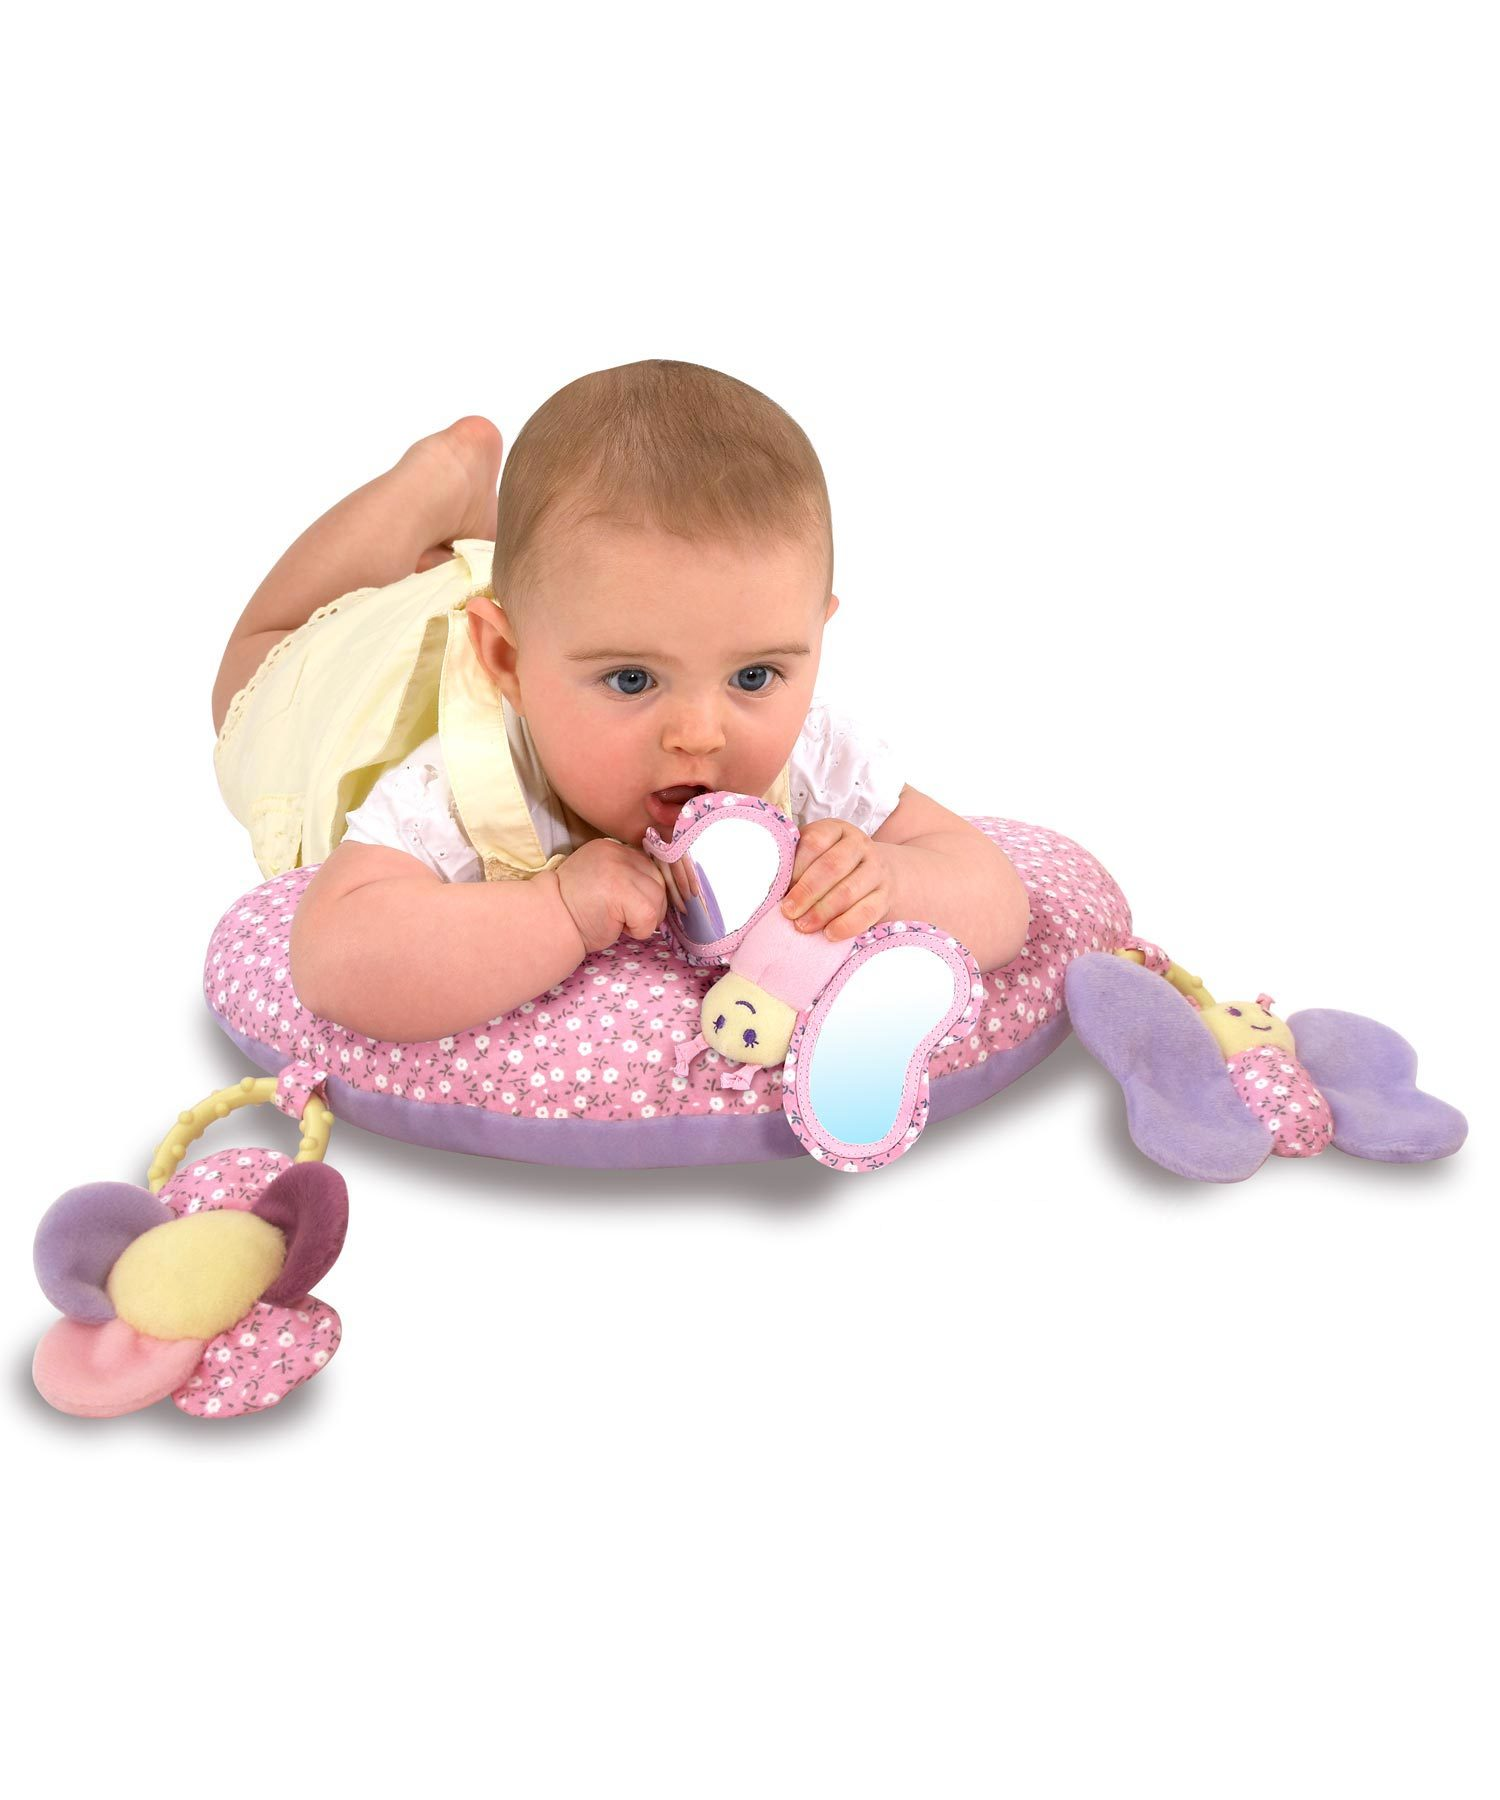 LB3007-Tummy-Time-Model.jpg